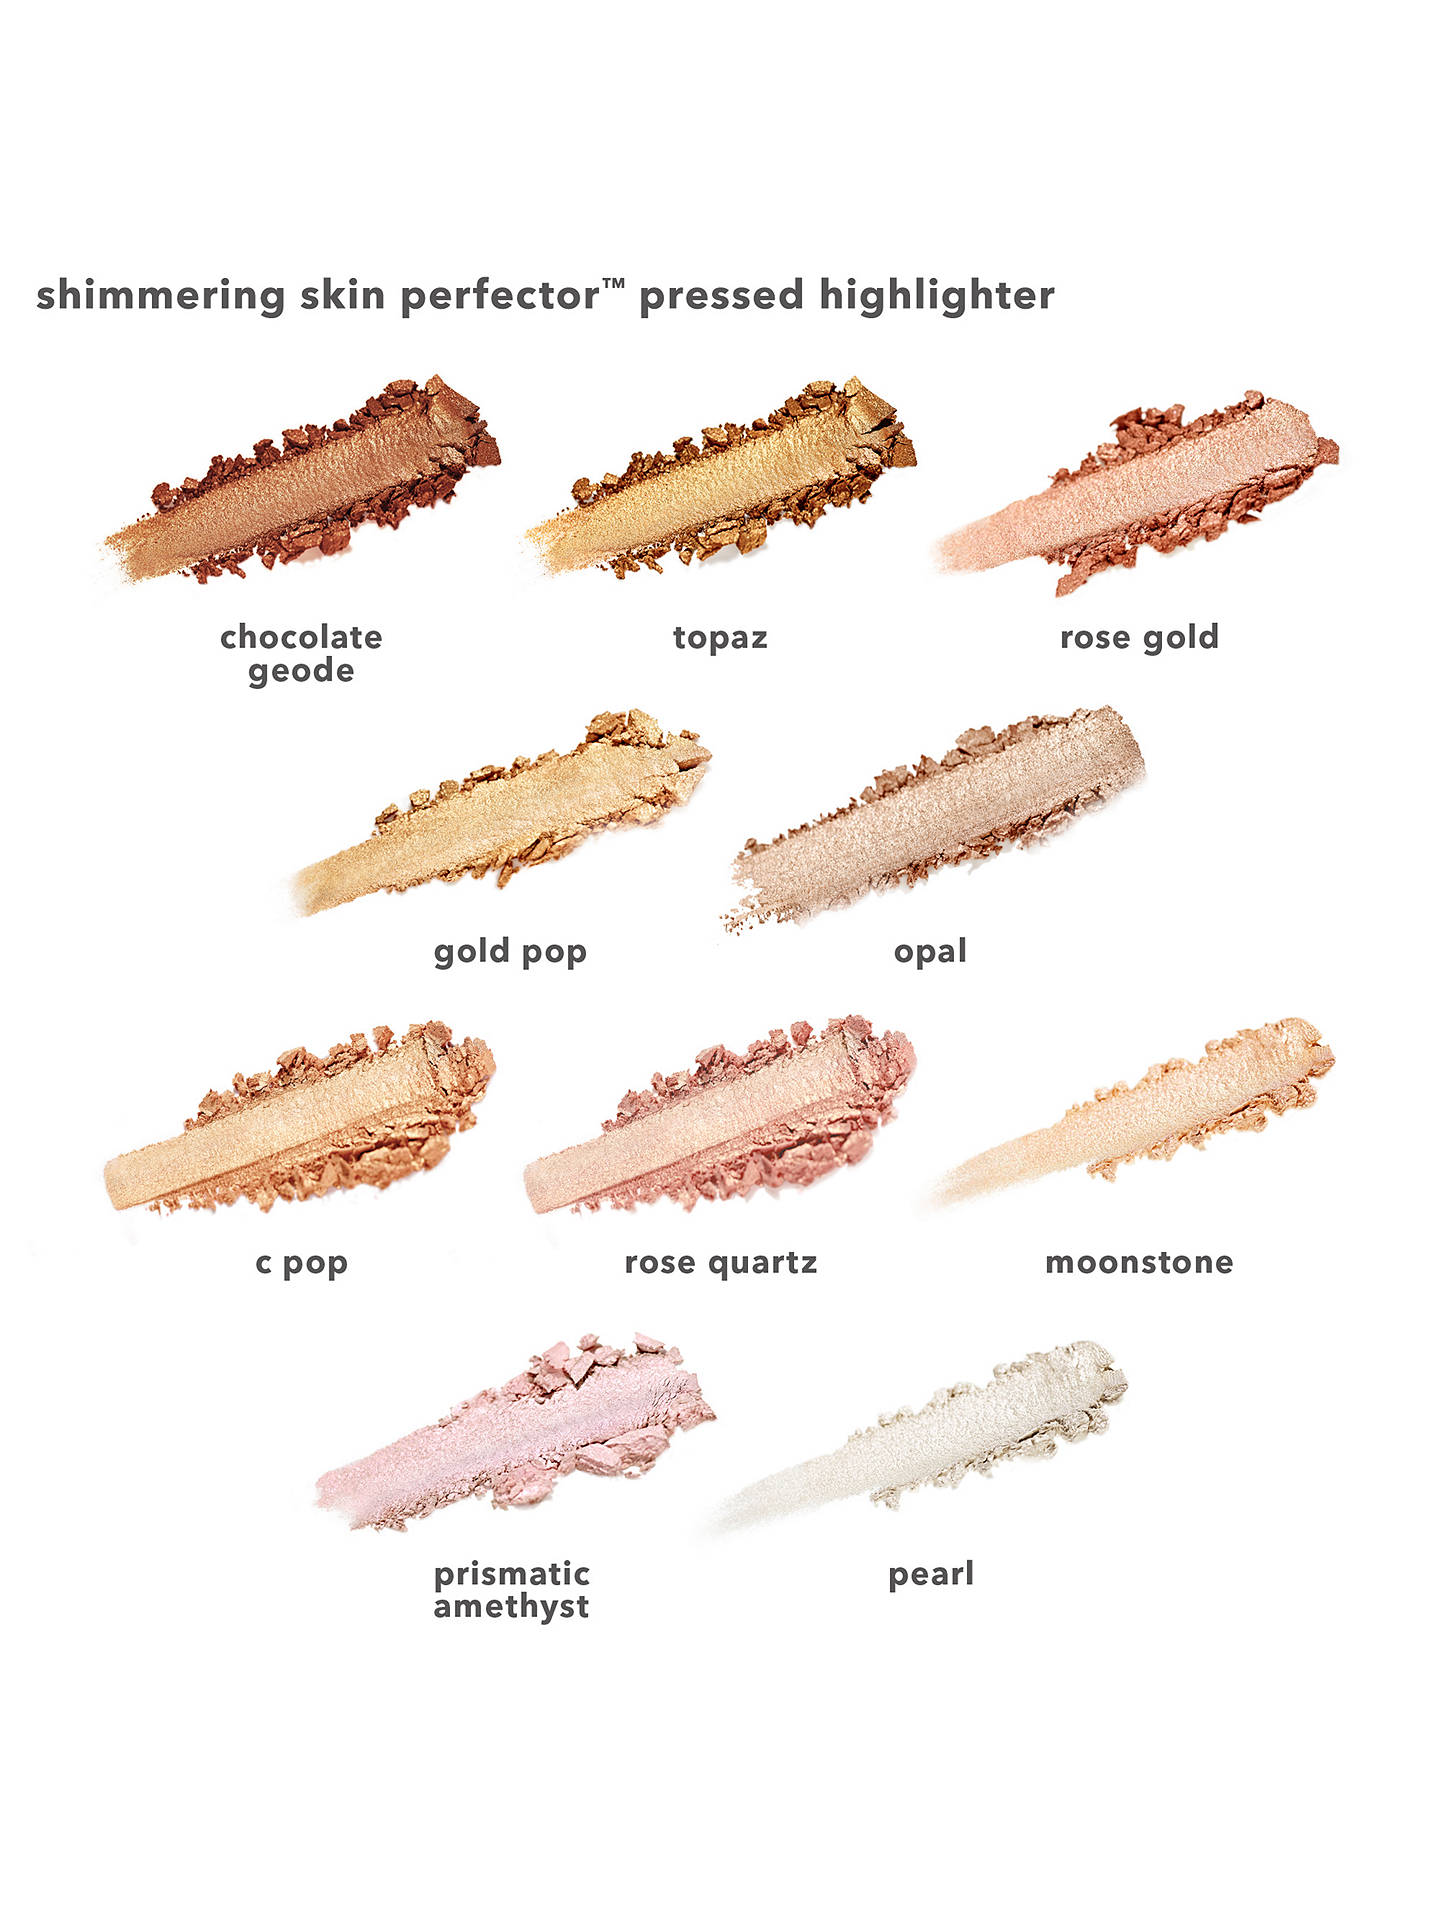 Buy BECCA Shimmering Skin Perfector™ Pressed Highlighter, Chocolate Geode Online at johnlewis.com